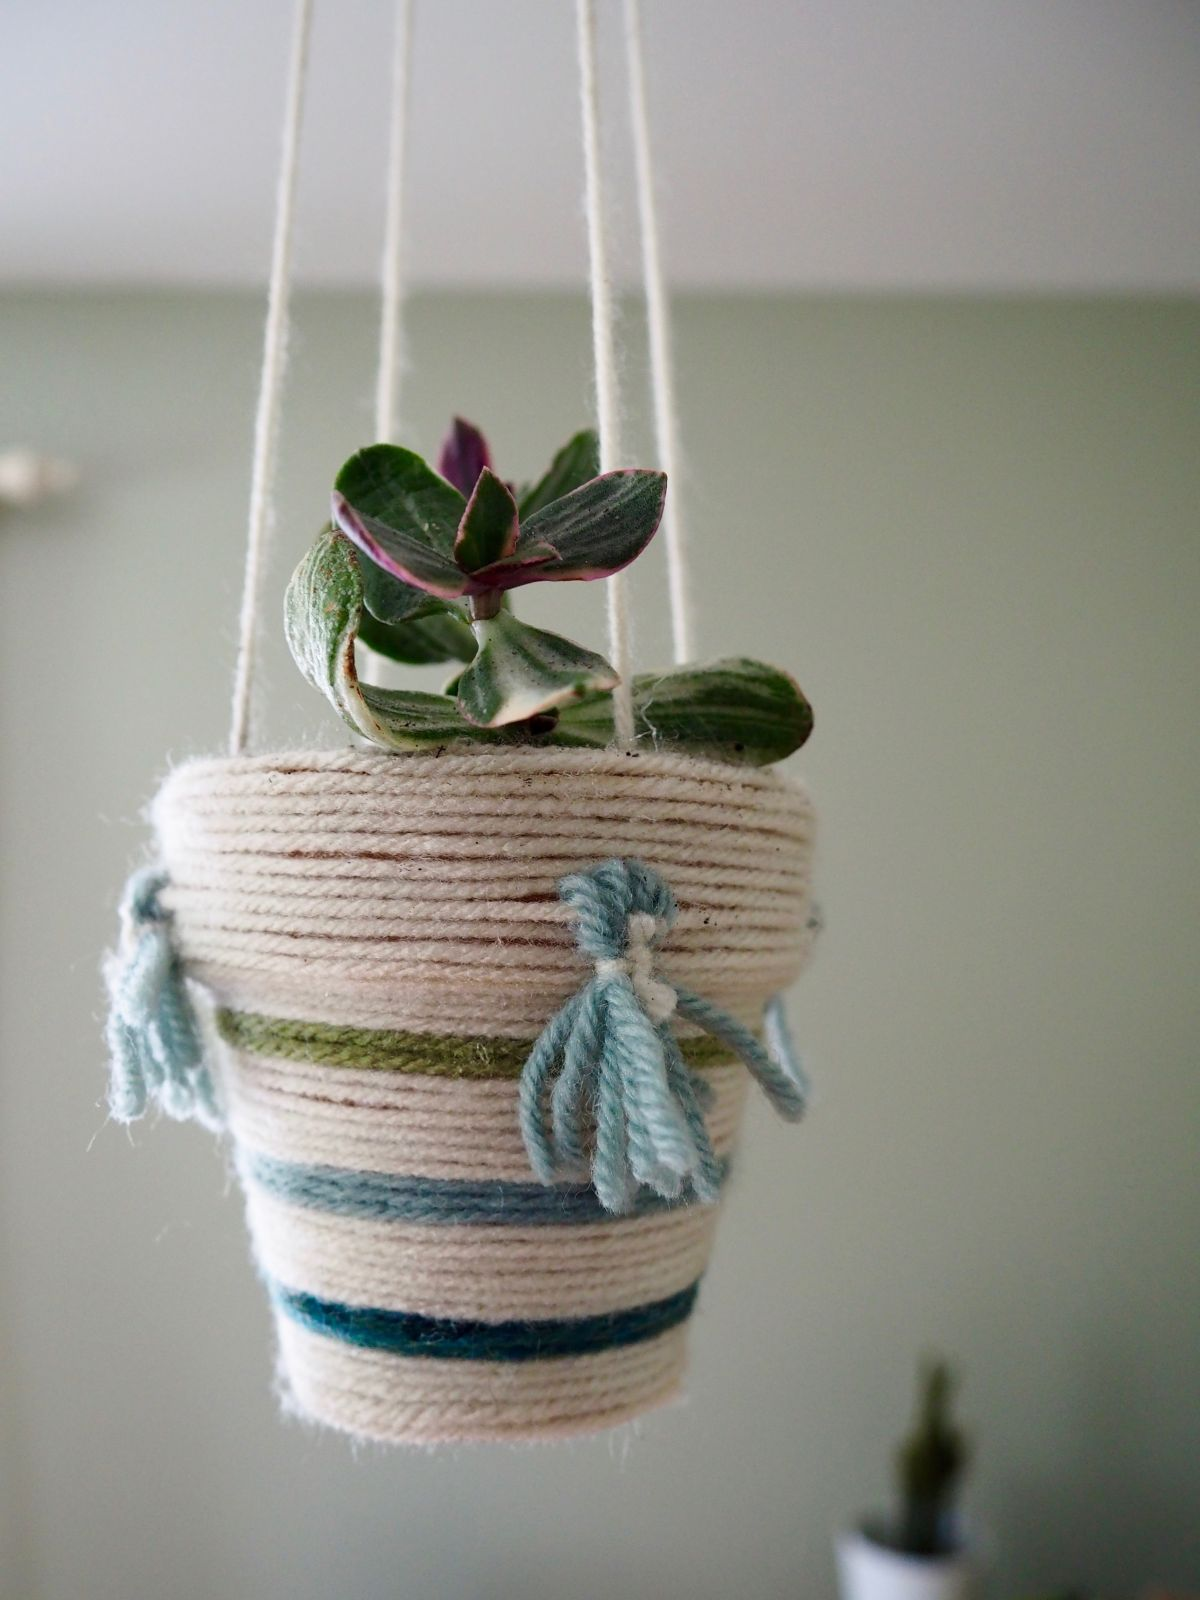 15 easy and adorable yarn crafts for your home - 15 Easy And Adorable Yarn Crafts For Your Home